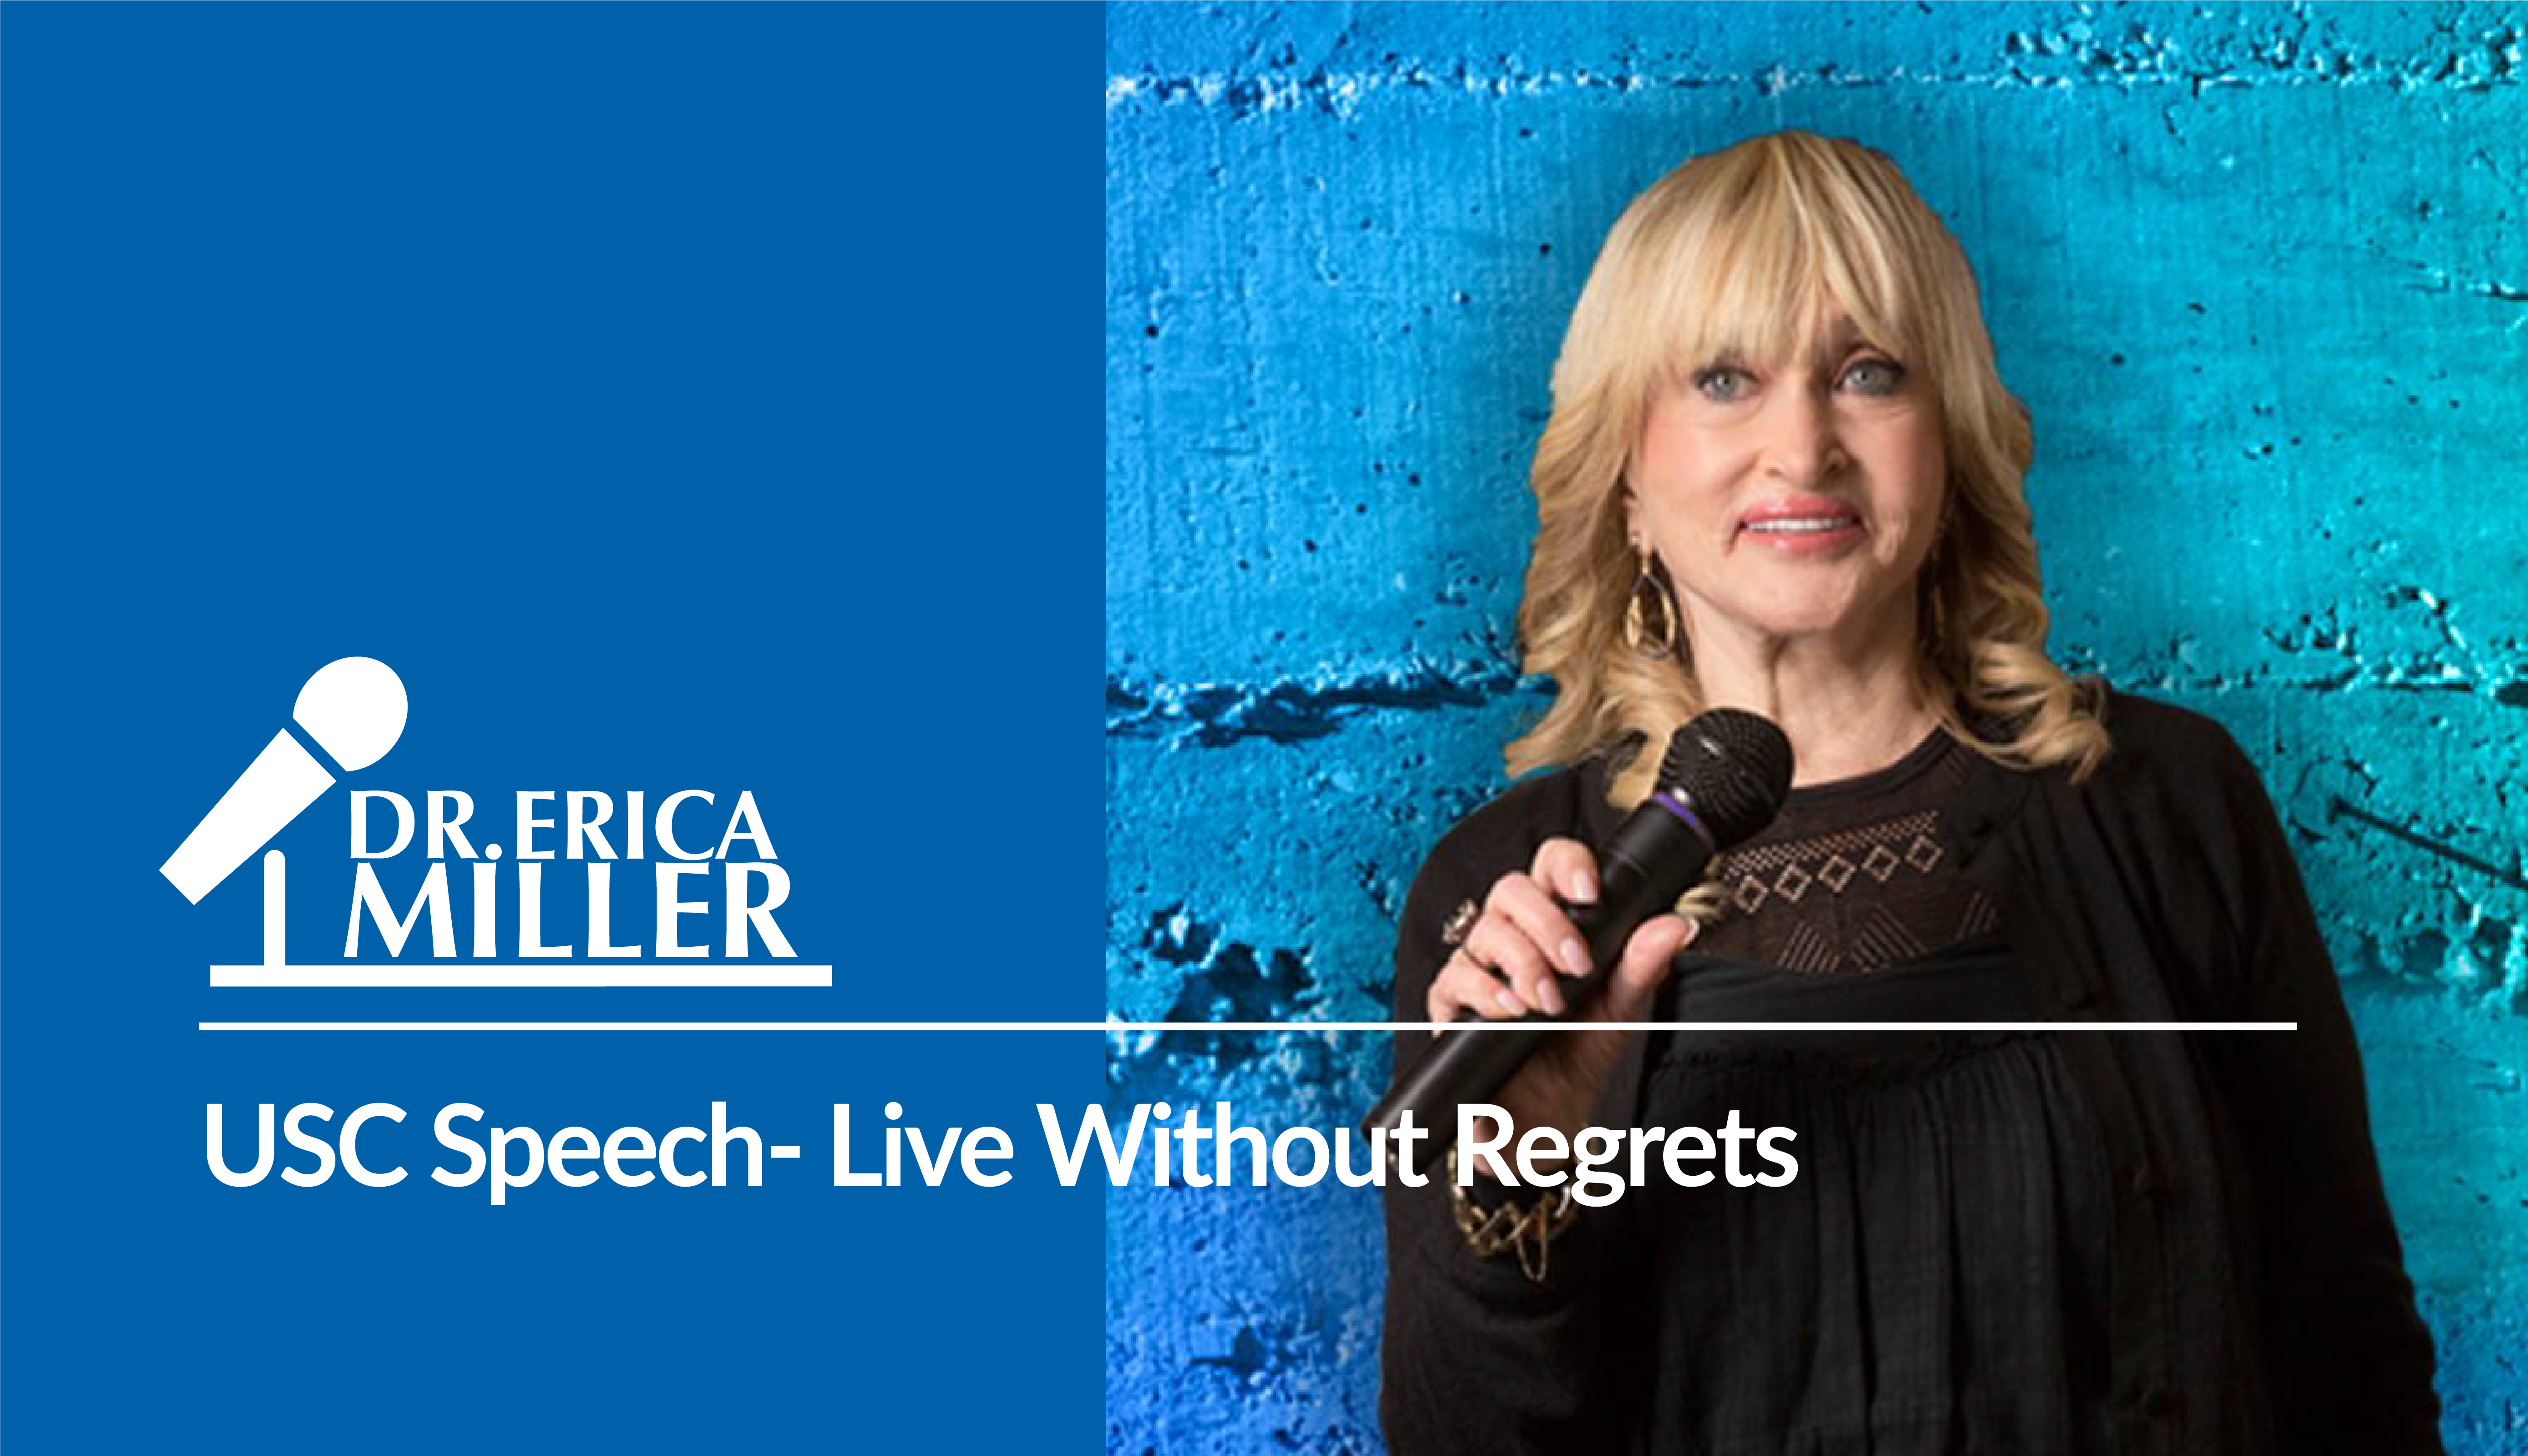 USC Speech- Live Without Regrets